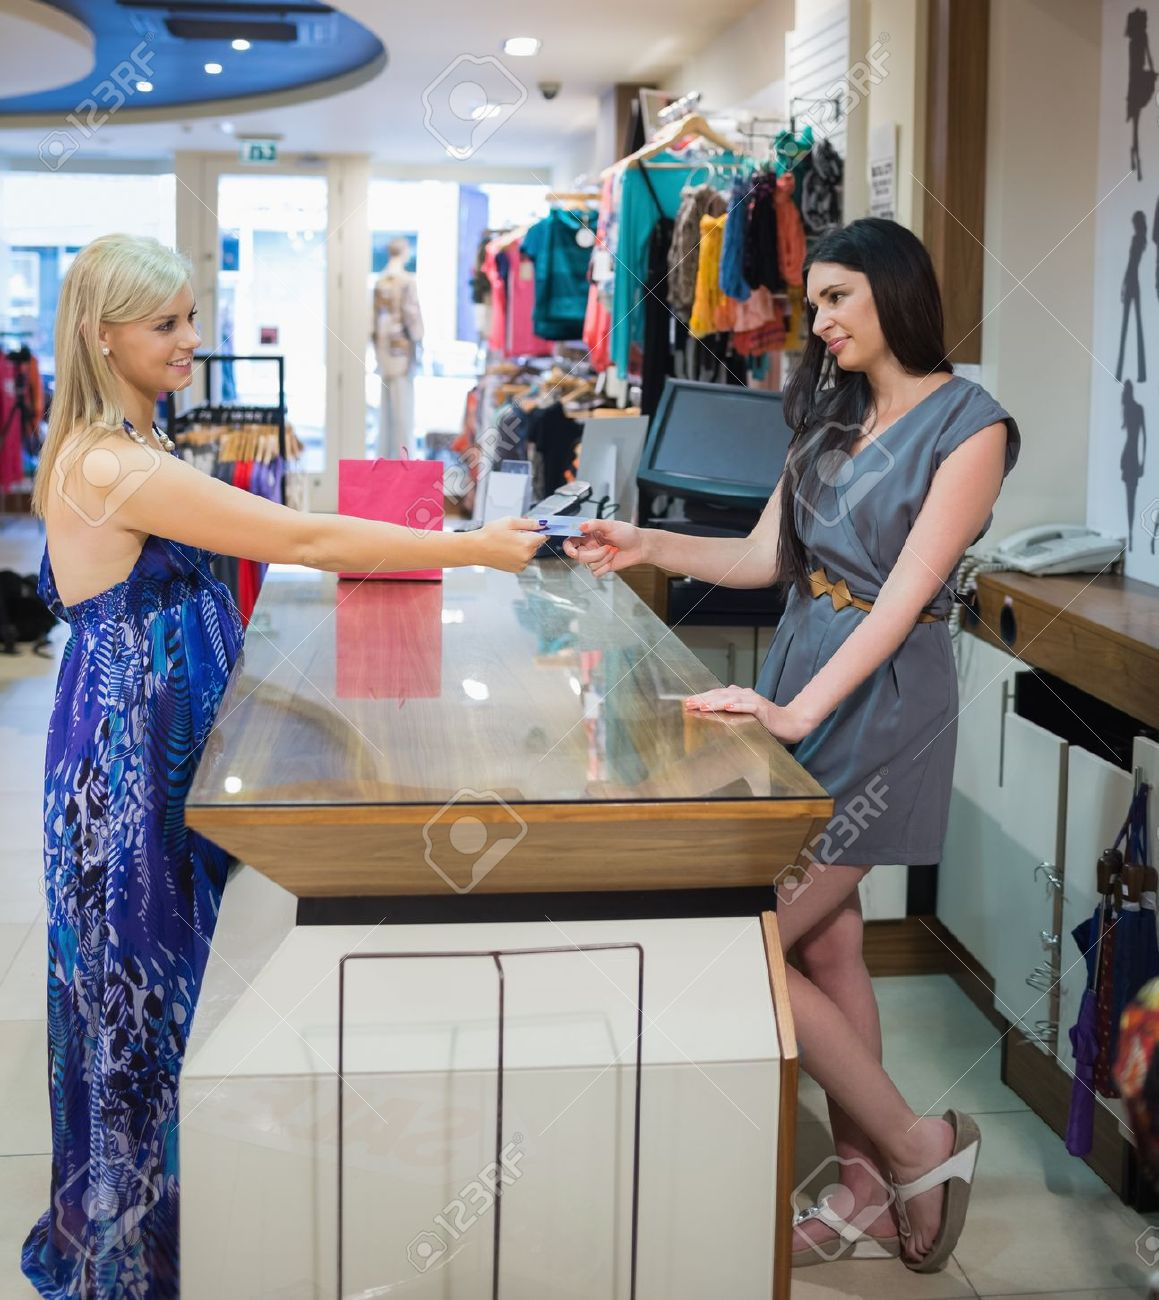 Women clothing stores Clothing stores credit cards